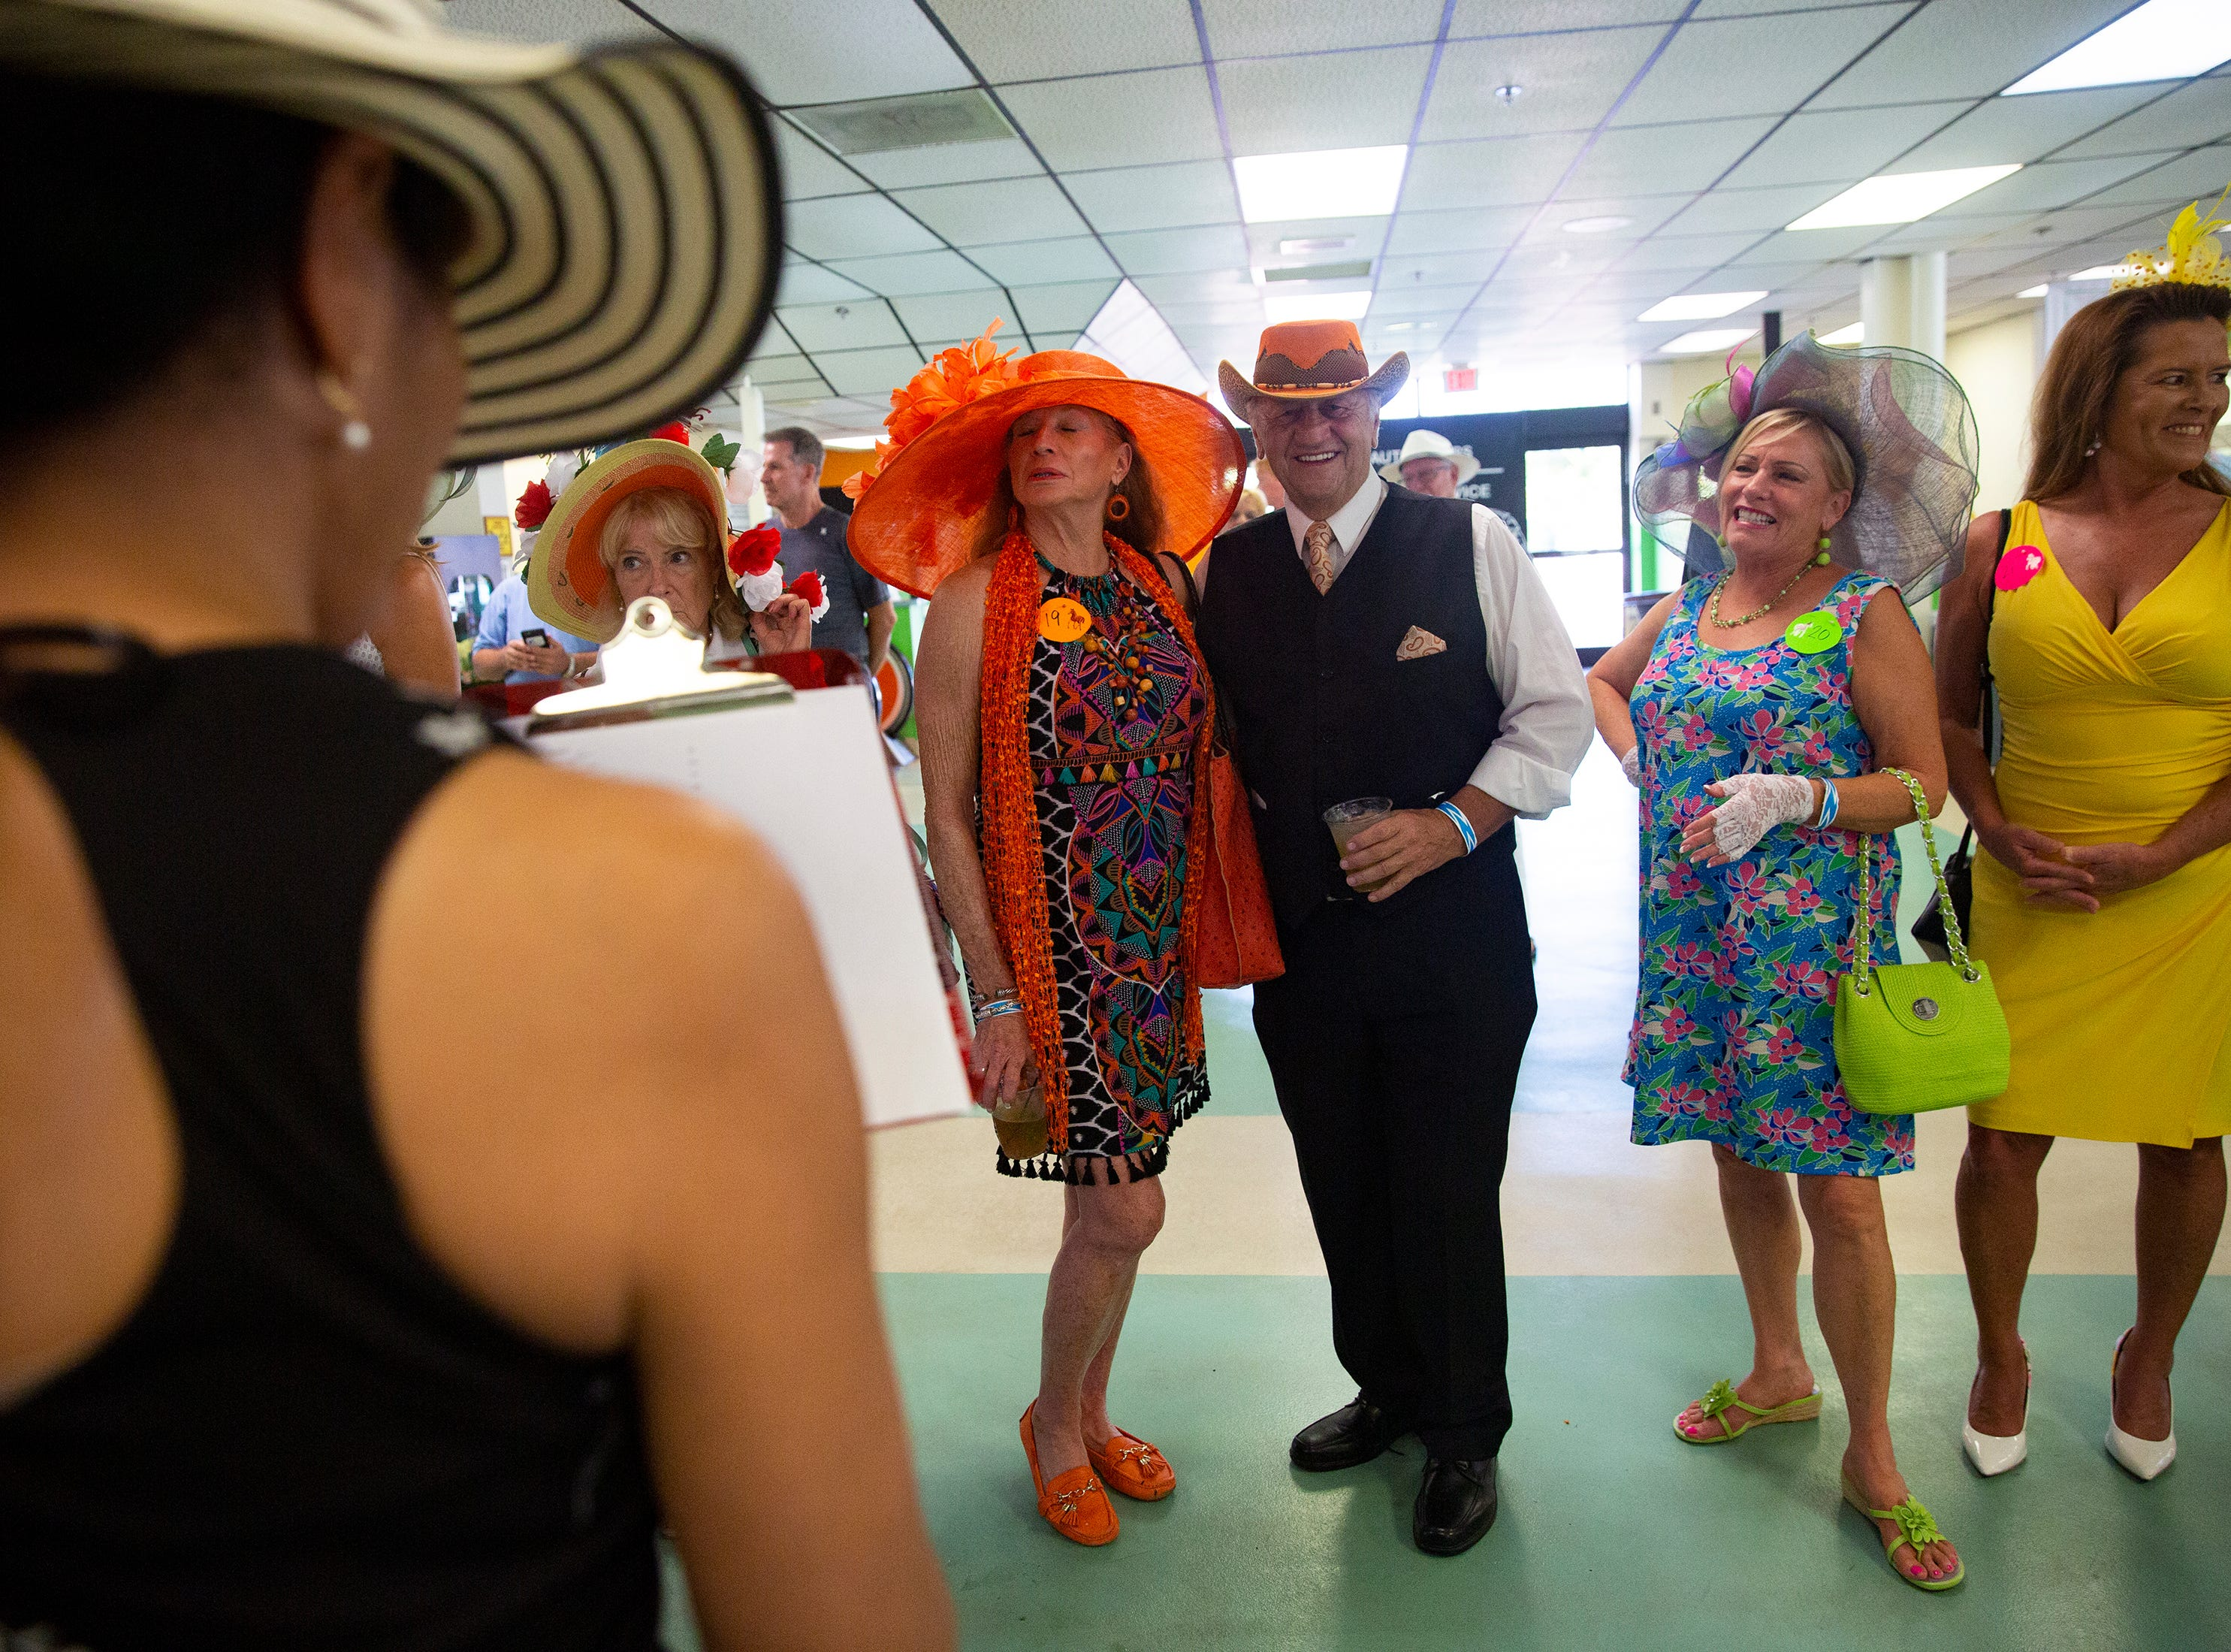 Judges look over Paulette Klein and Joseph Agril's hat during the judging portion of the Best Derby Hat competition, Saturday, May 4, 2019, at Naples Fort Myers Greyhound Racing and Poker in Bonita Springs.